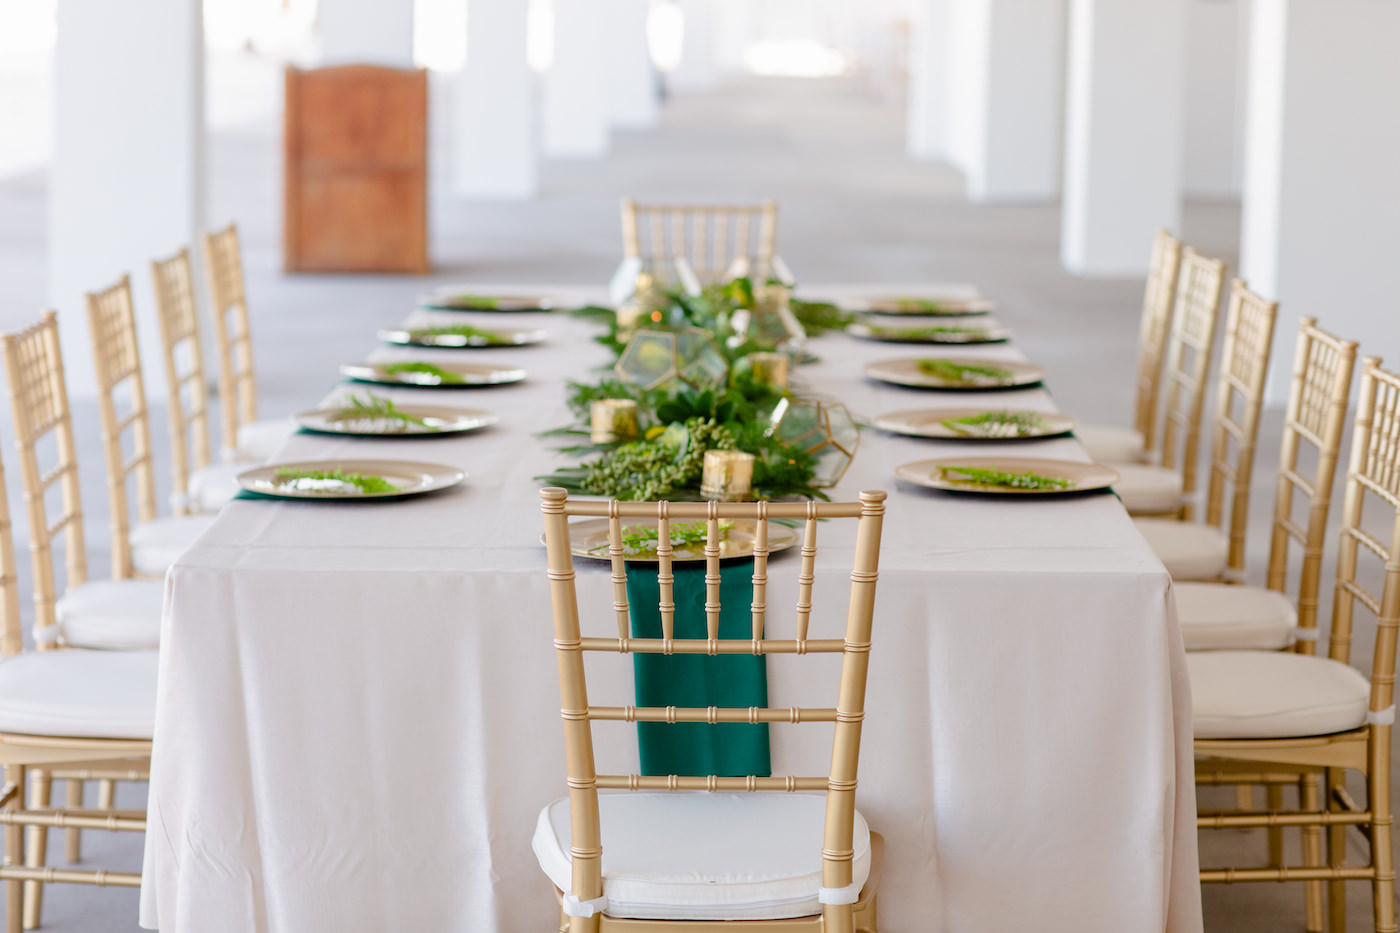 Clearwater Beach Wedding Venue Hilton Clearwater Beach   Modern Tropical Beach Outdoor Wedding Reception Terrace Feasting Table with Champagne Table Linens and Emerald Green Napkins under Gold Charger Plates   Gold Chiavari Chairs and Tropical Palm Frond Leaf Floral Arrangement Garland